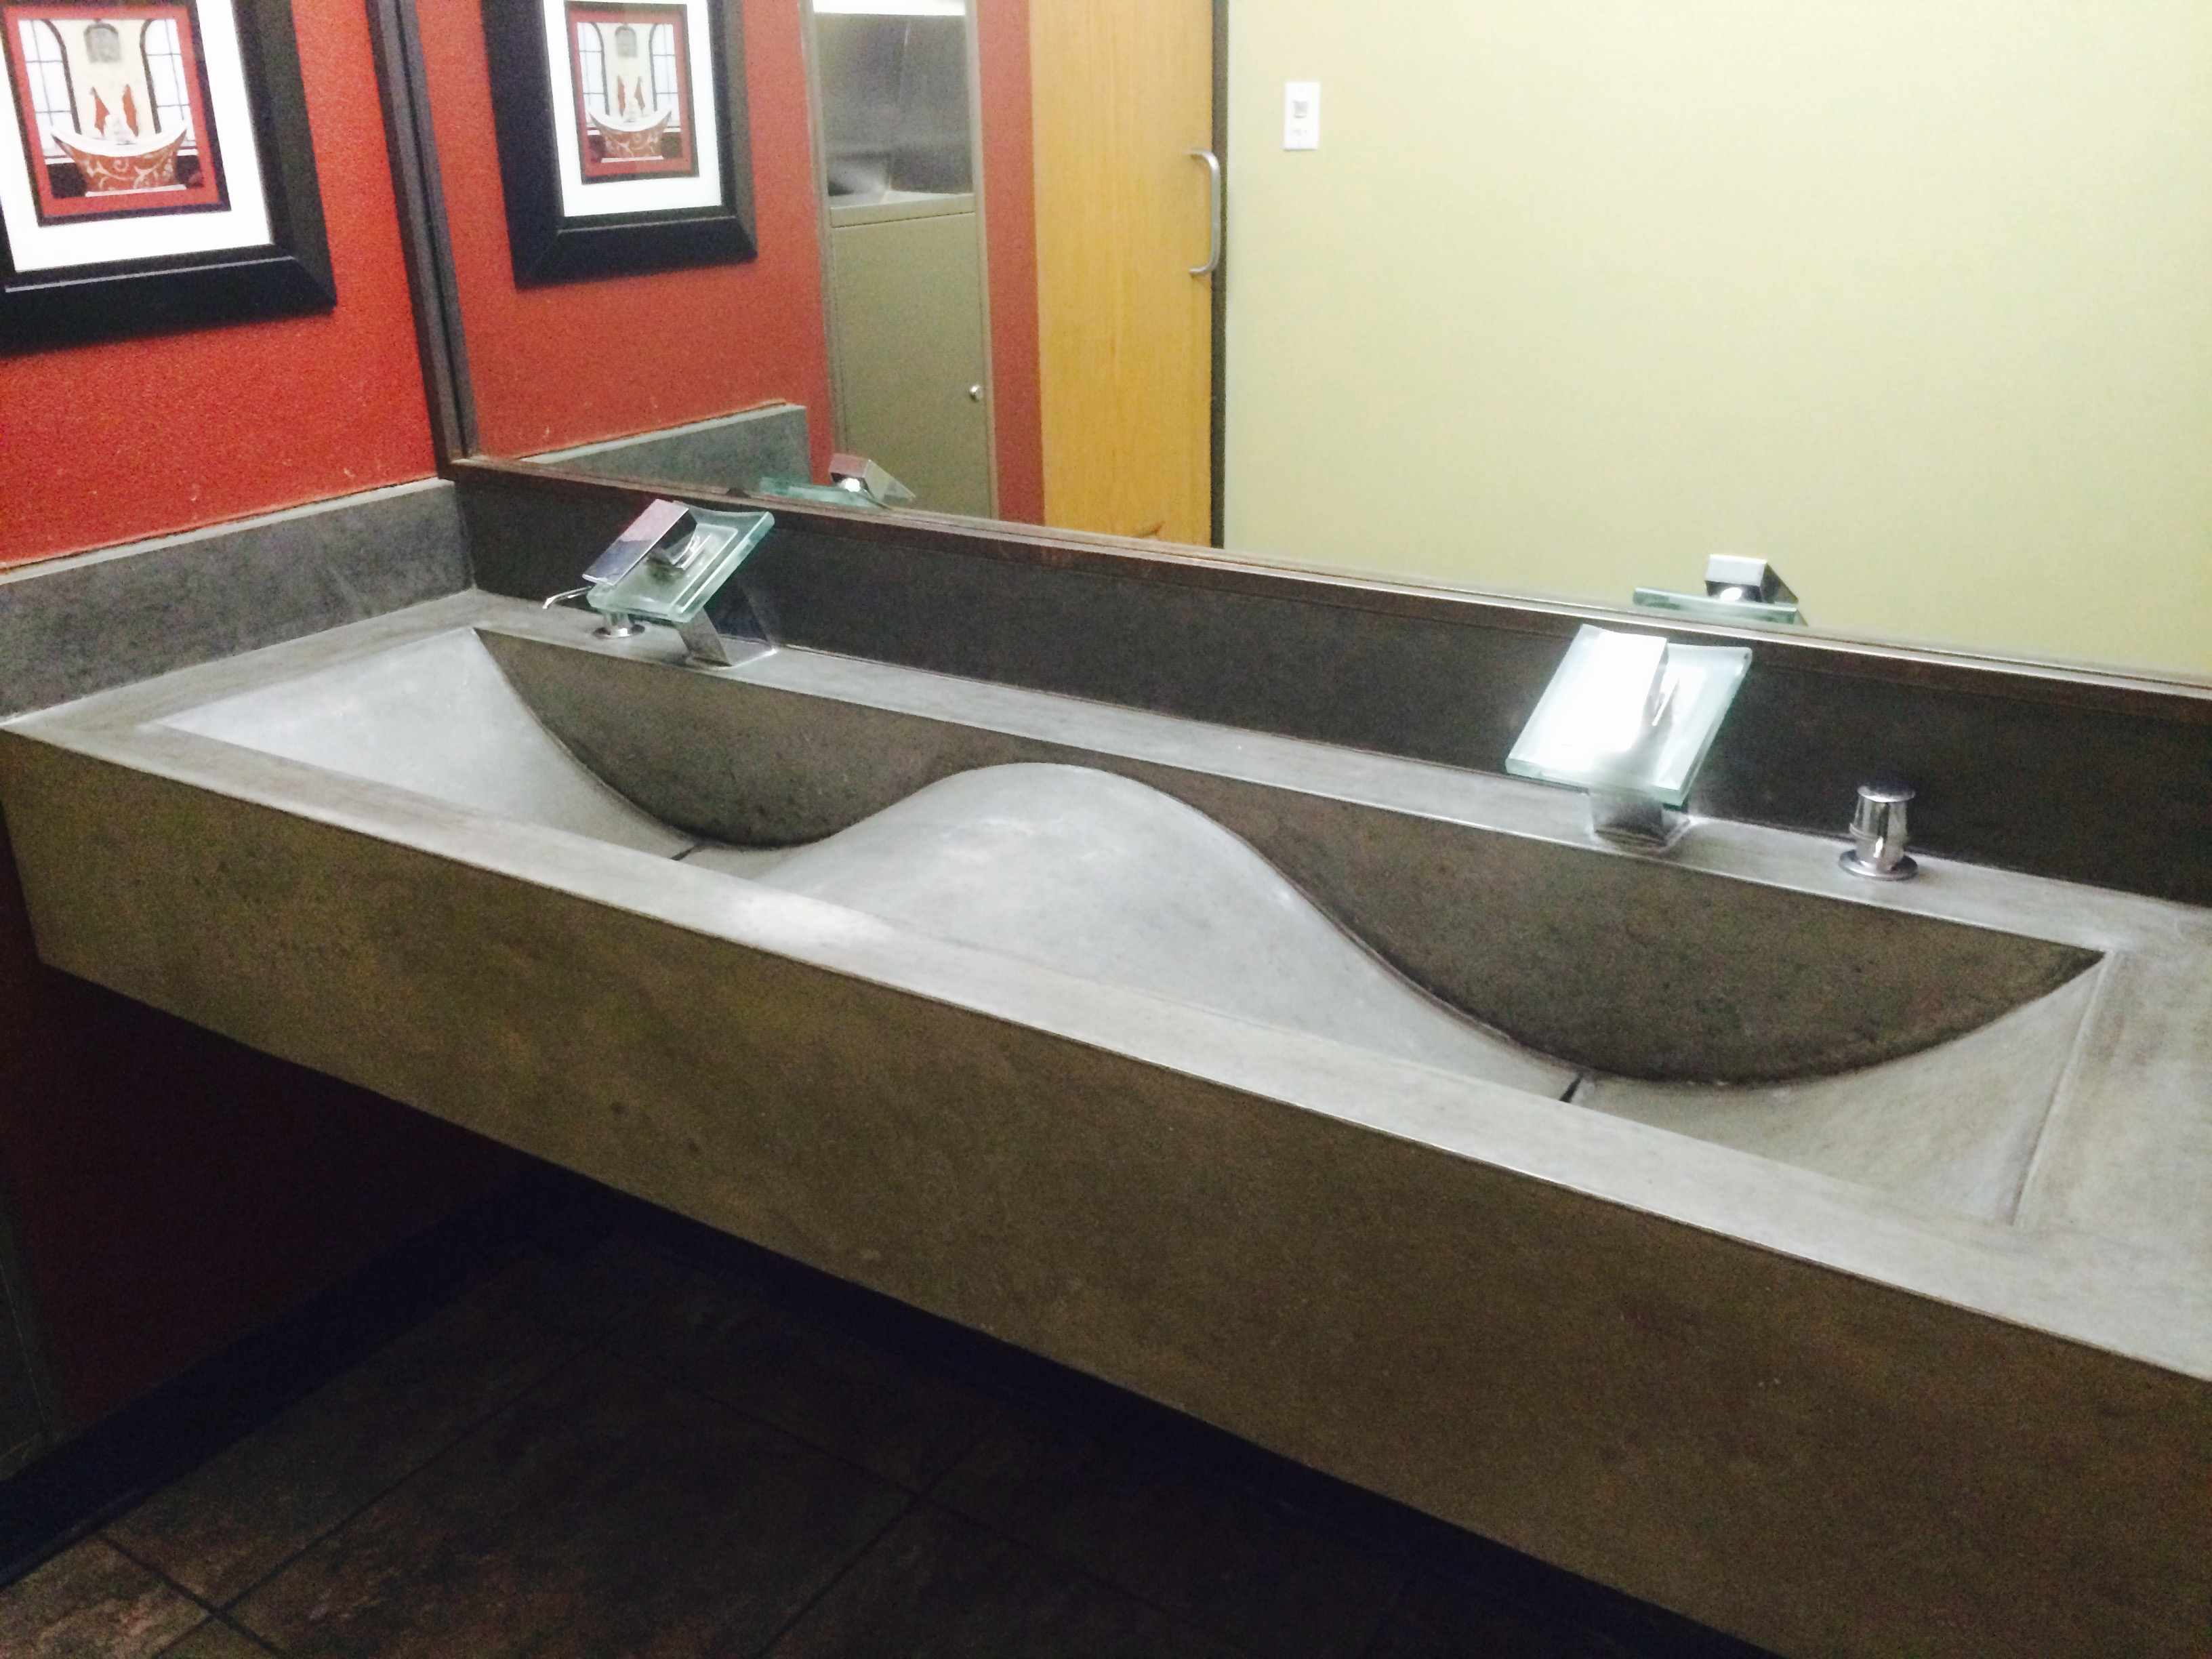 Commercial bathroom sinks